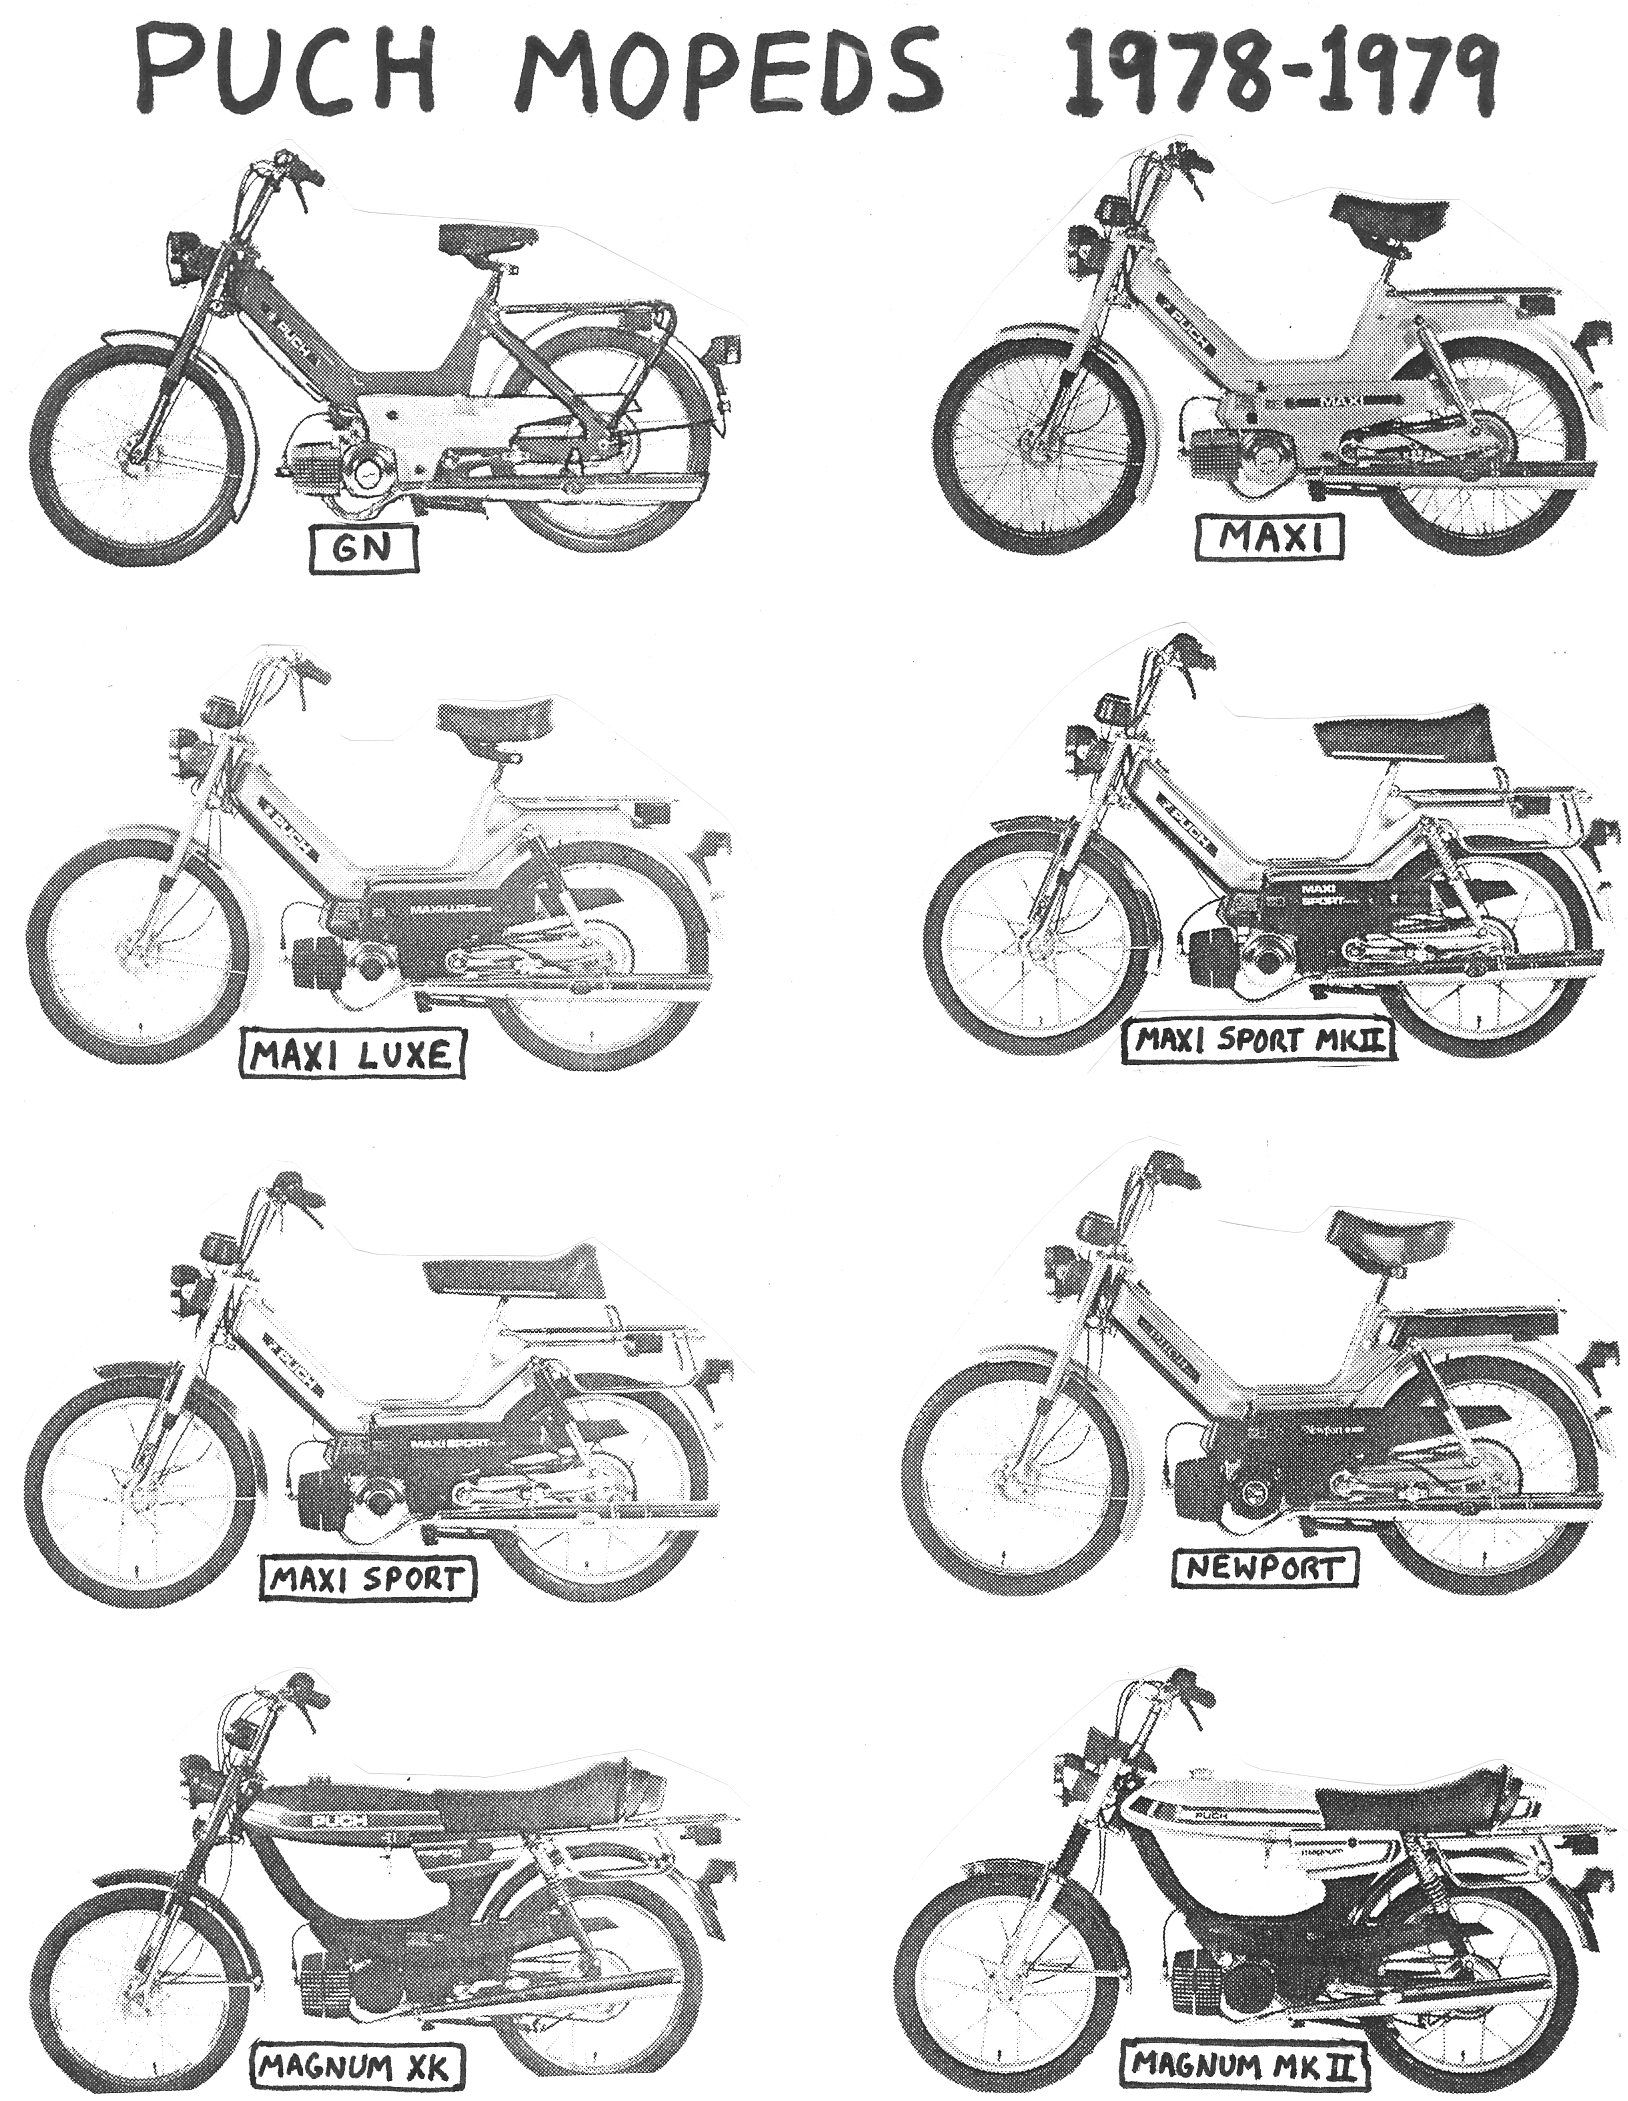 Puch Moped Taxonomy